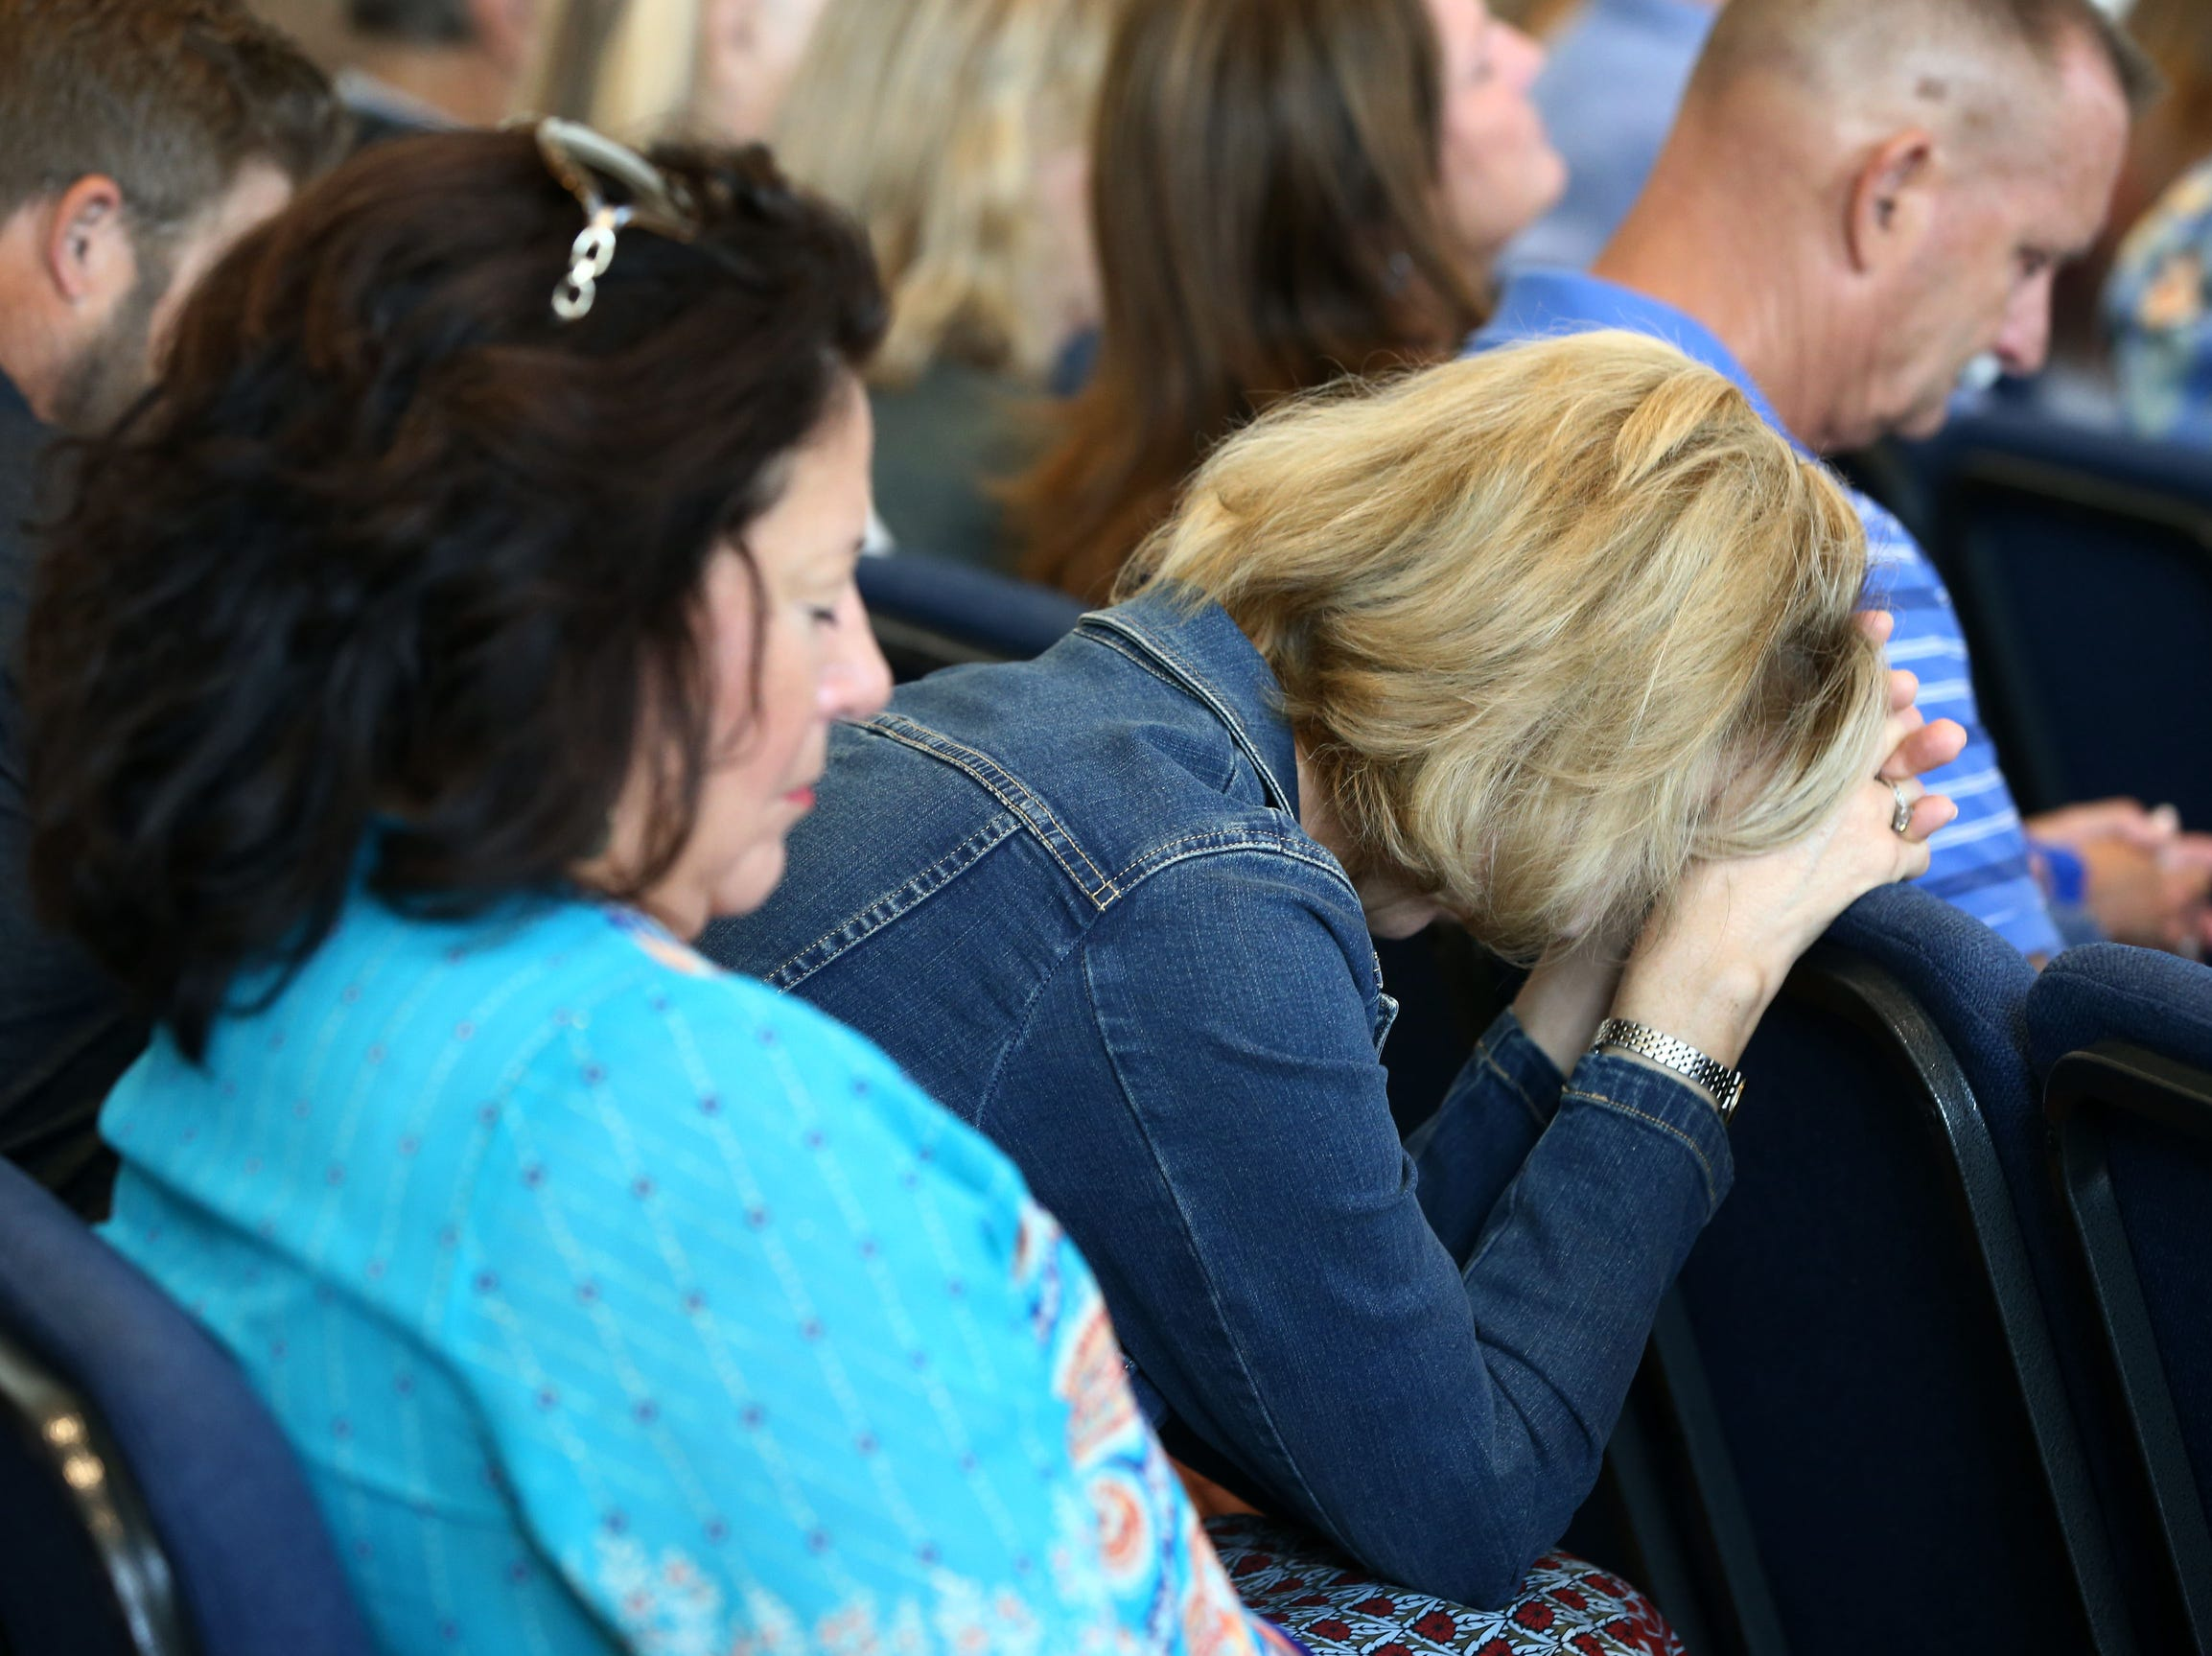 The congregation, which includes fire and shooting survivors and victim families, pray during Sunday morning services at Godspeak Calvary Chapel, Sunday, in Newbury Park, Calif.